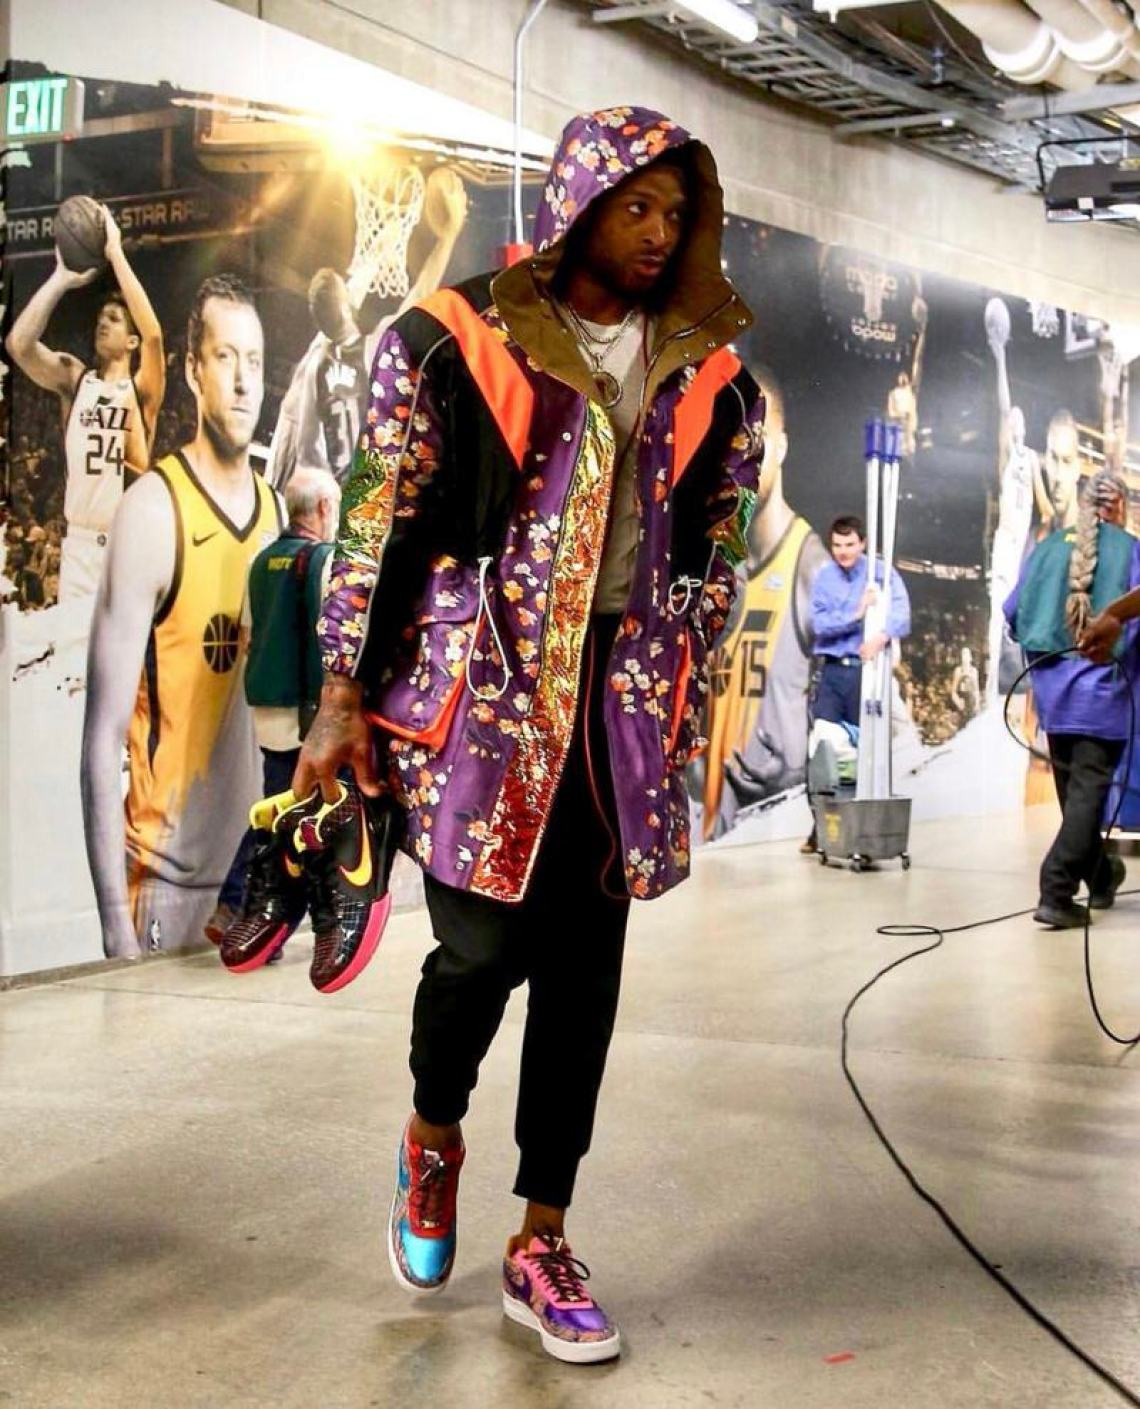 The more color the better. PJ Tucker has been going all-out this season for pre-game fits.